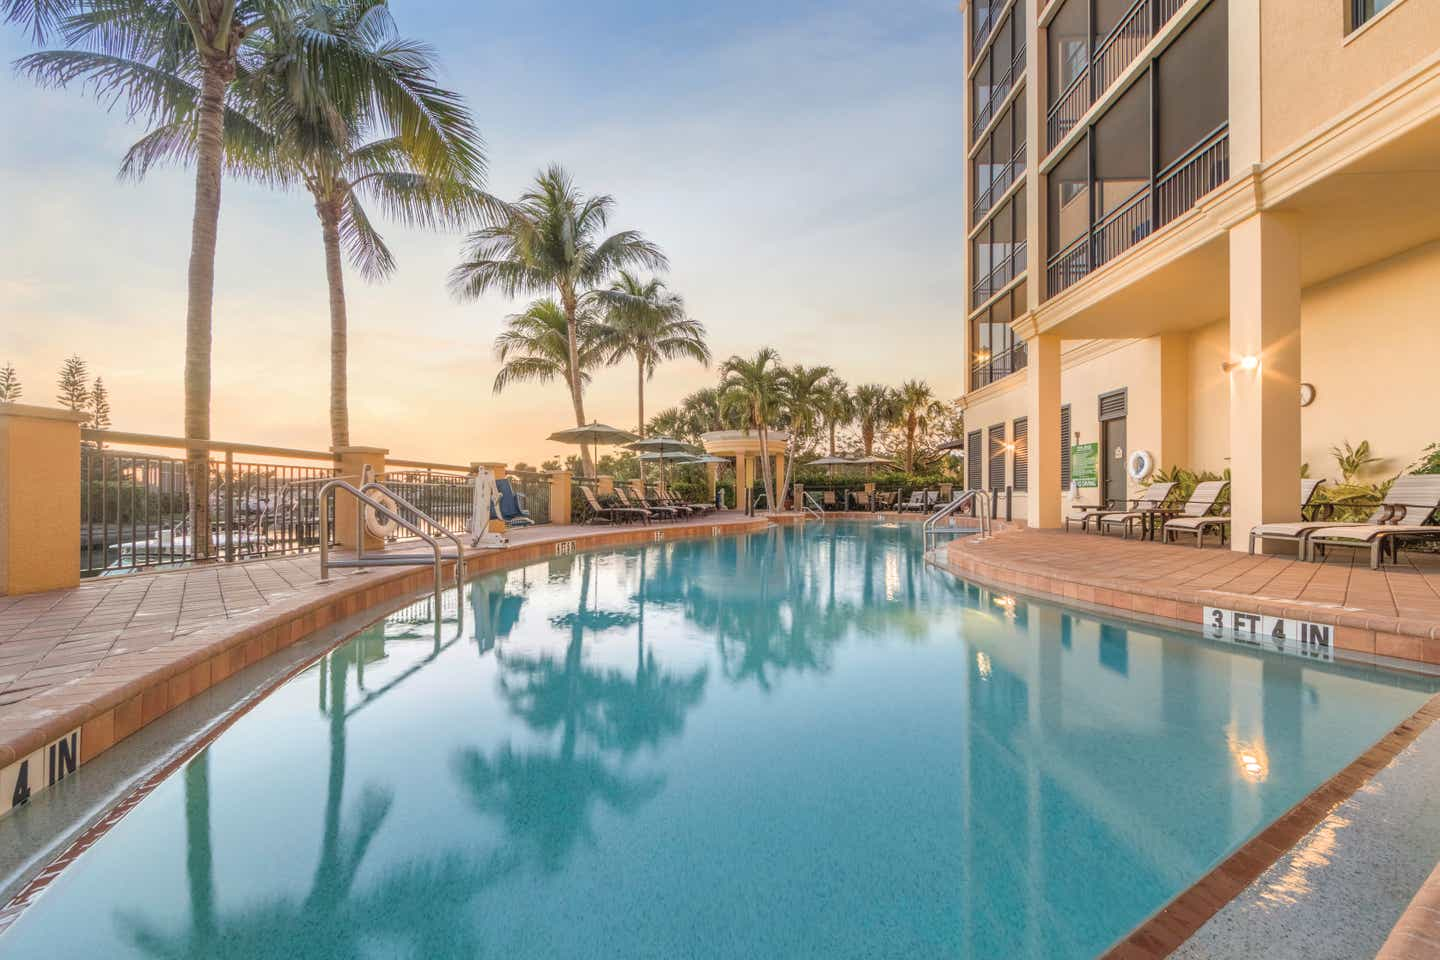 Outdoor pool surrounded by palm trees at Sunset Cove Resort